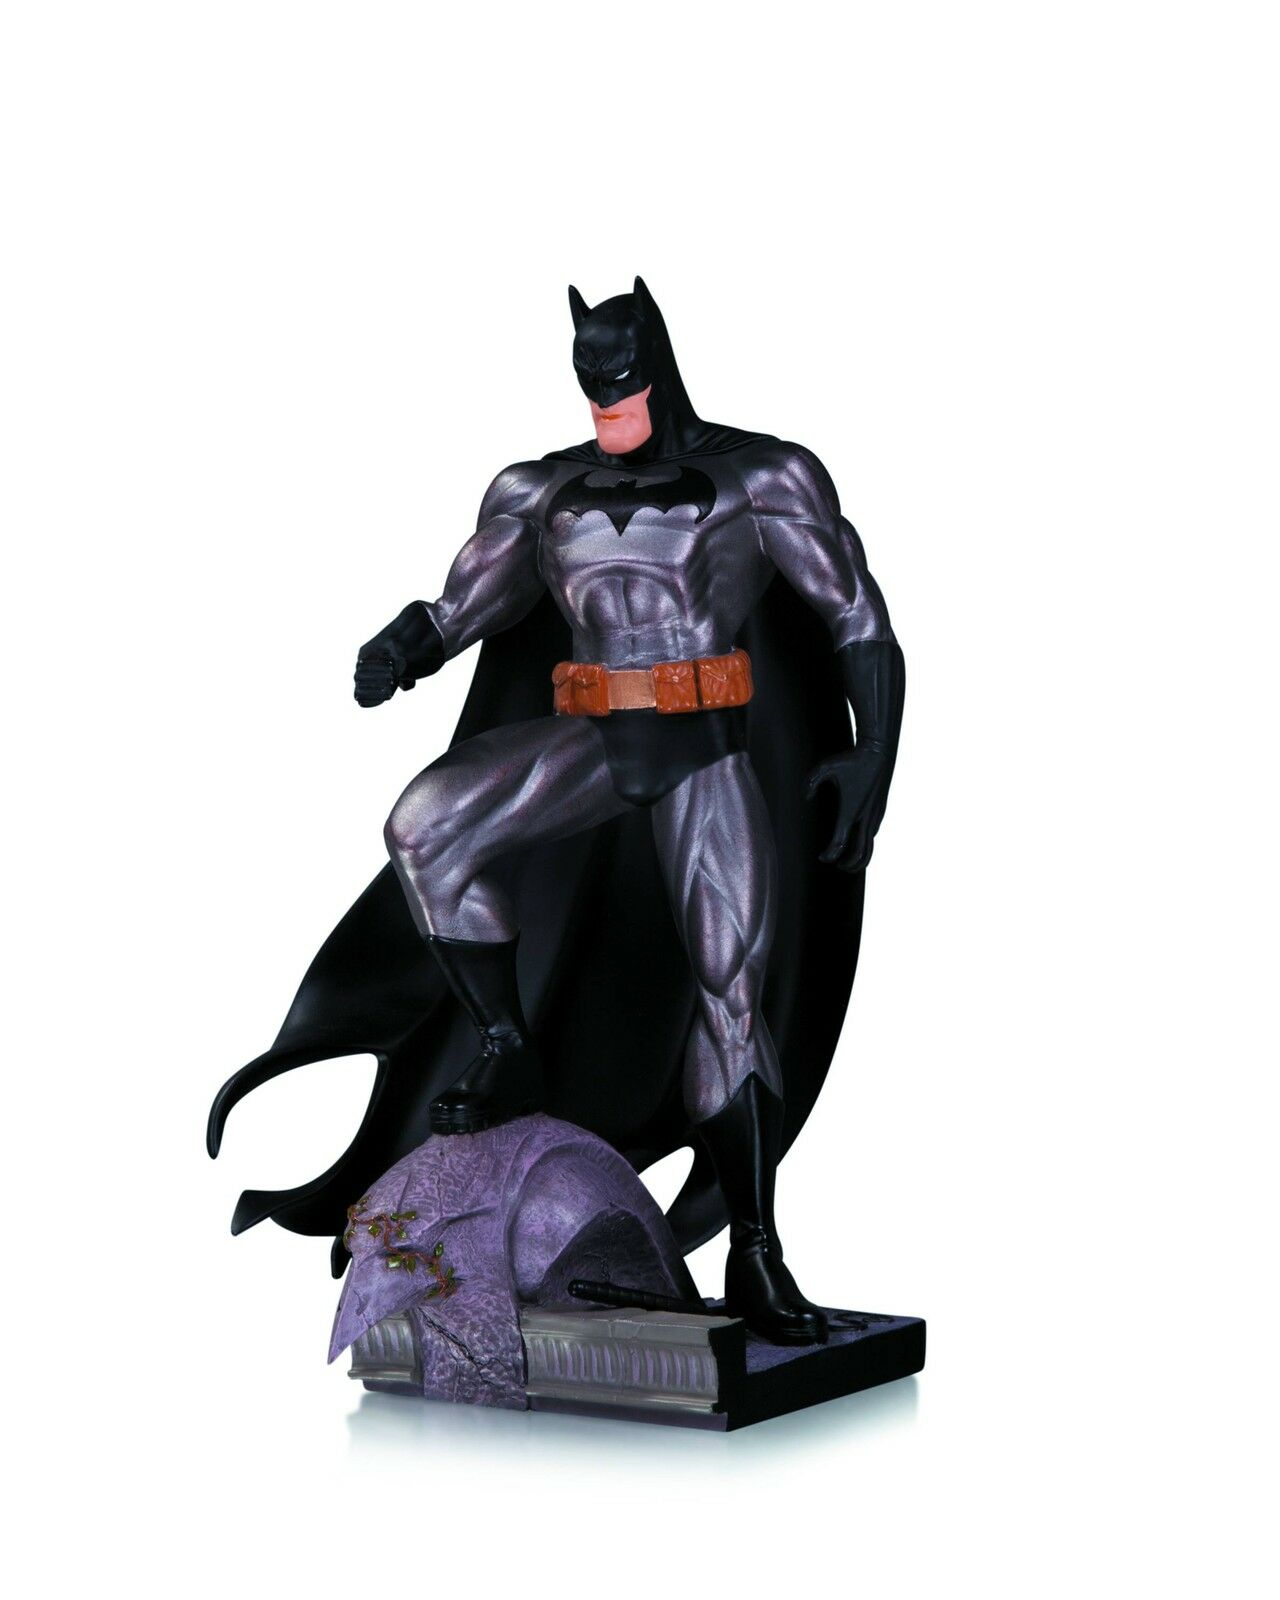 Batman Metallic Mini Statue By Jim Lee Dc Collectibles